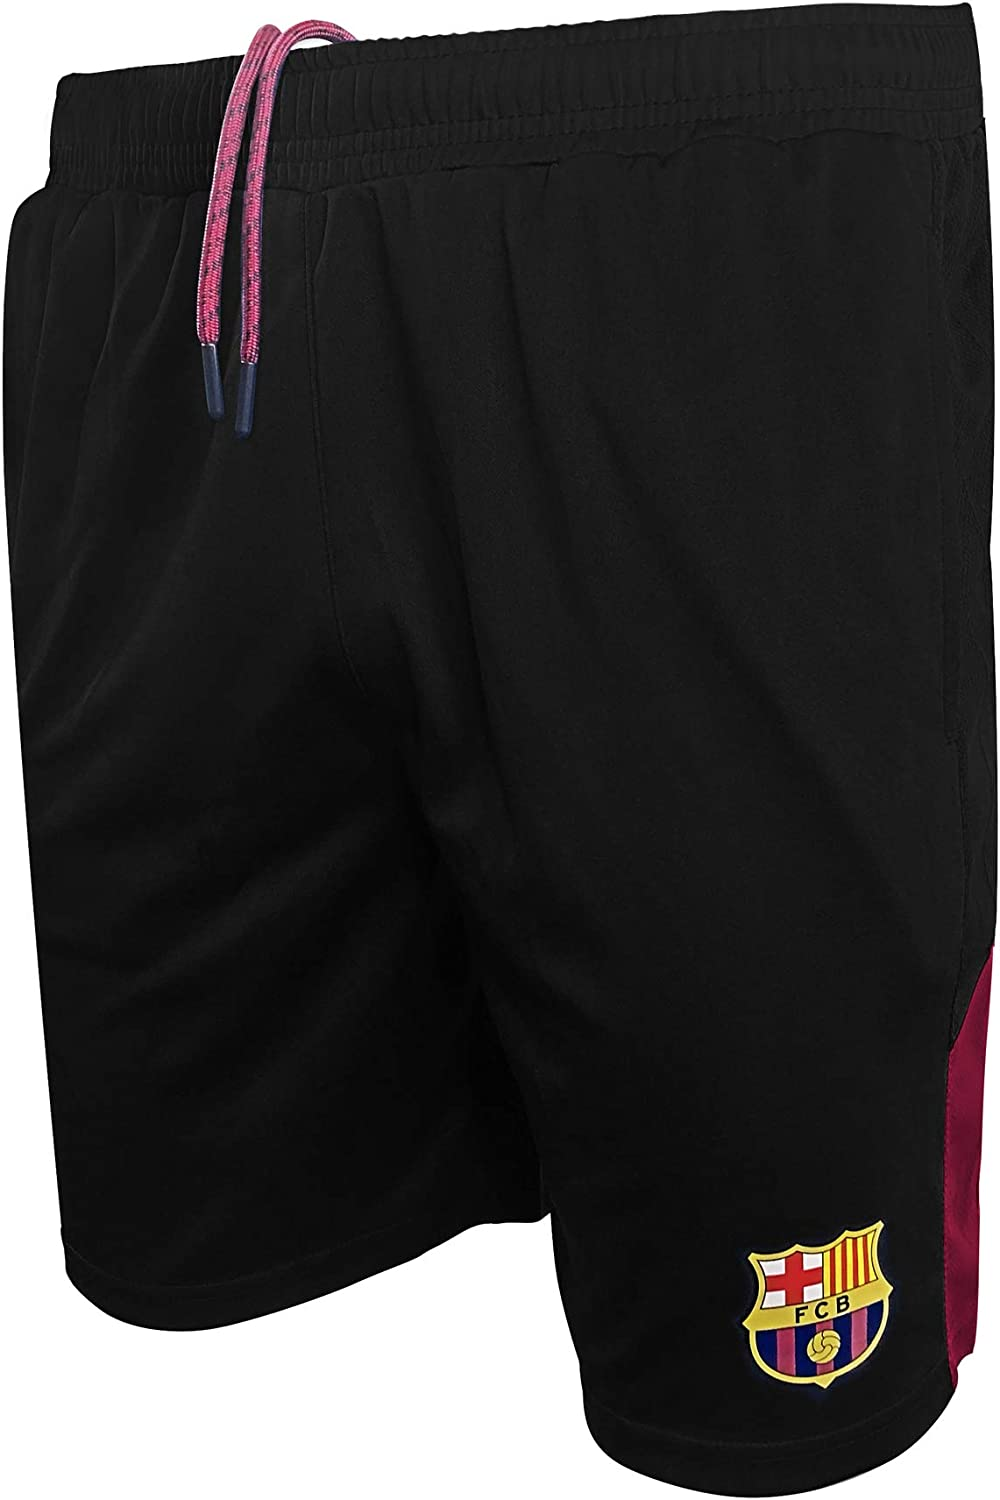 Icon Sports Mens UEFA Champions League Soccer Team Soccer Shorts